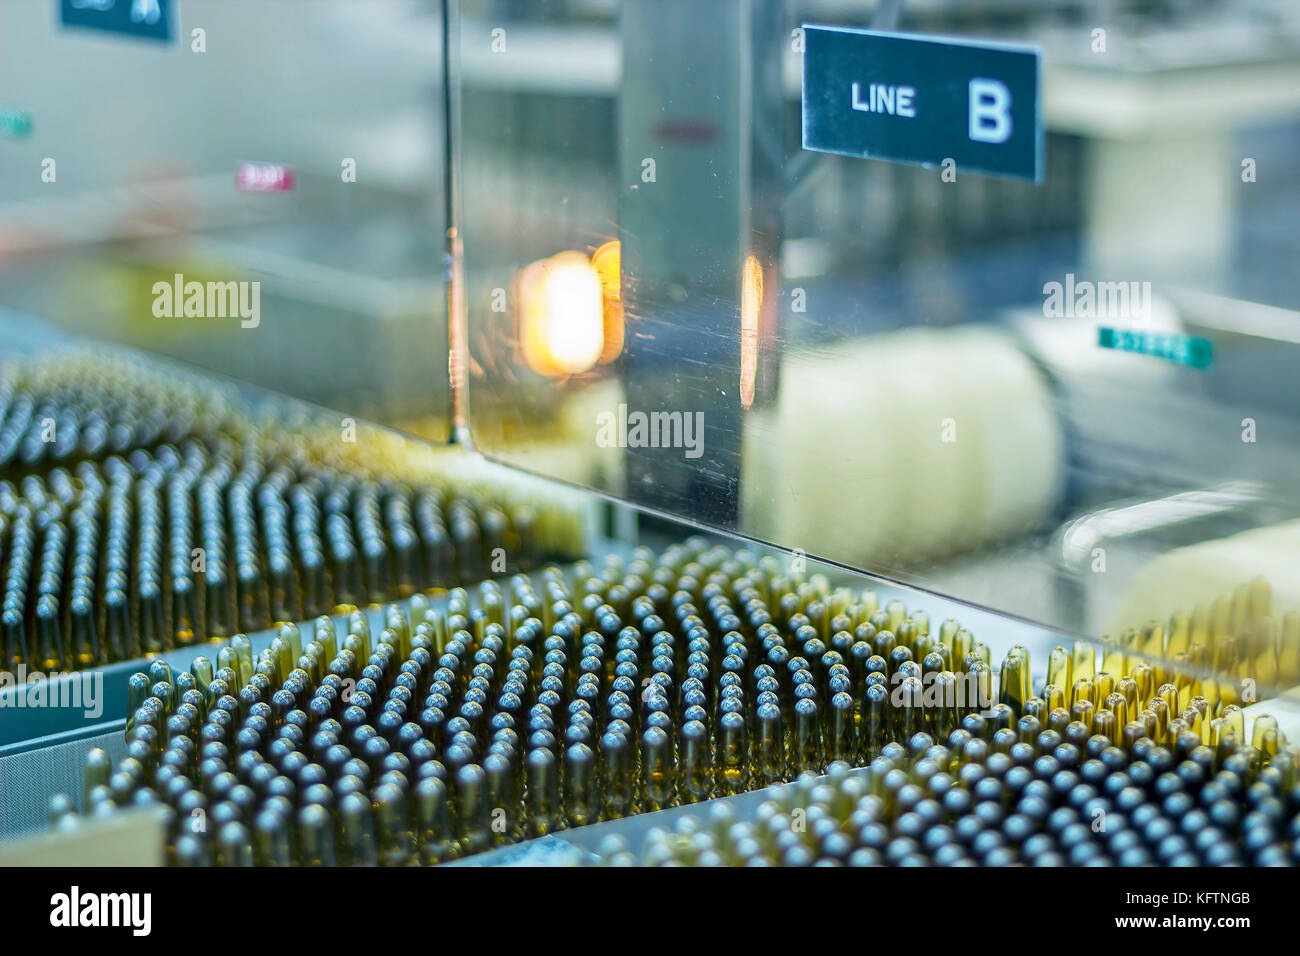 Automatic inspection machine inspects vials and ampules for particulates in liquid and container defects. - Stock Image